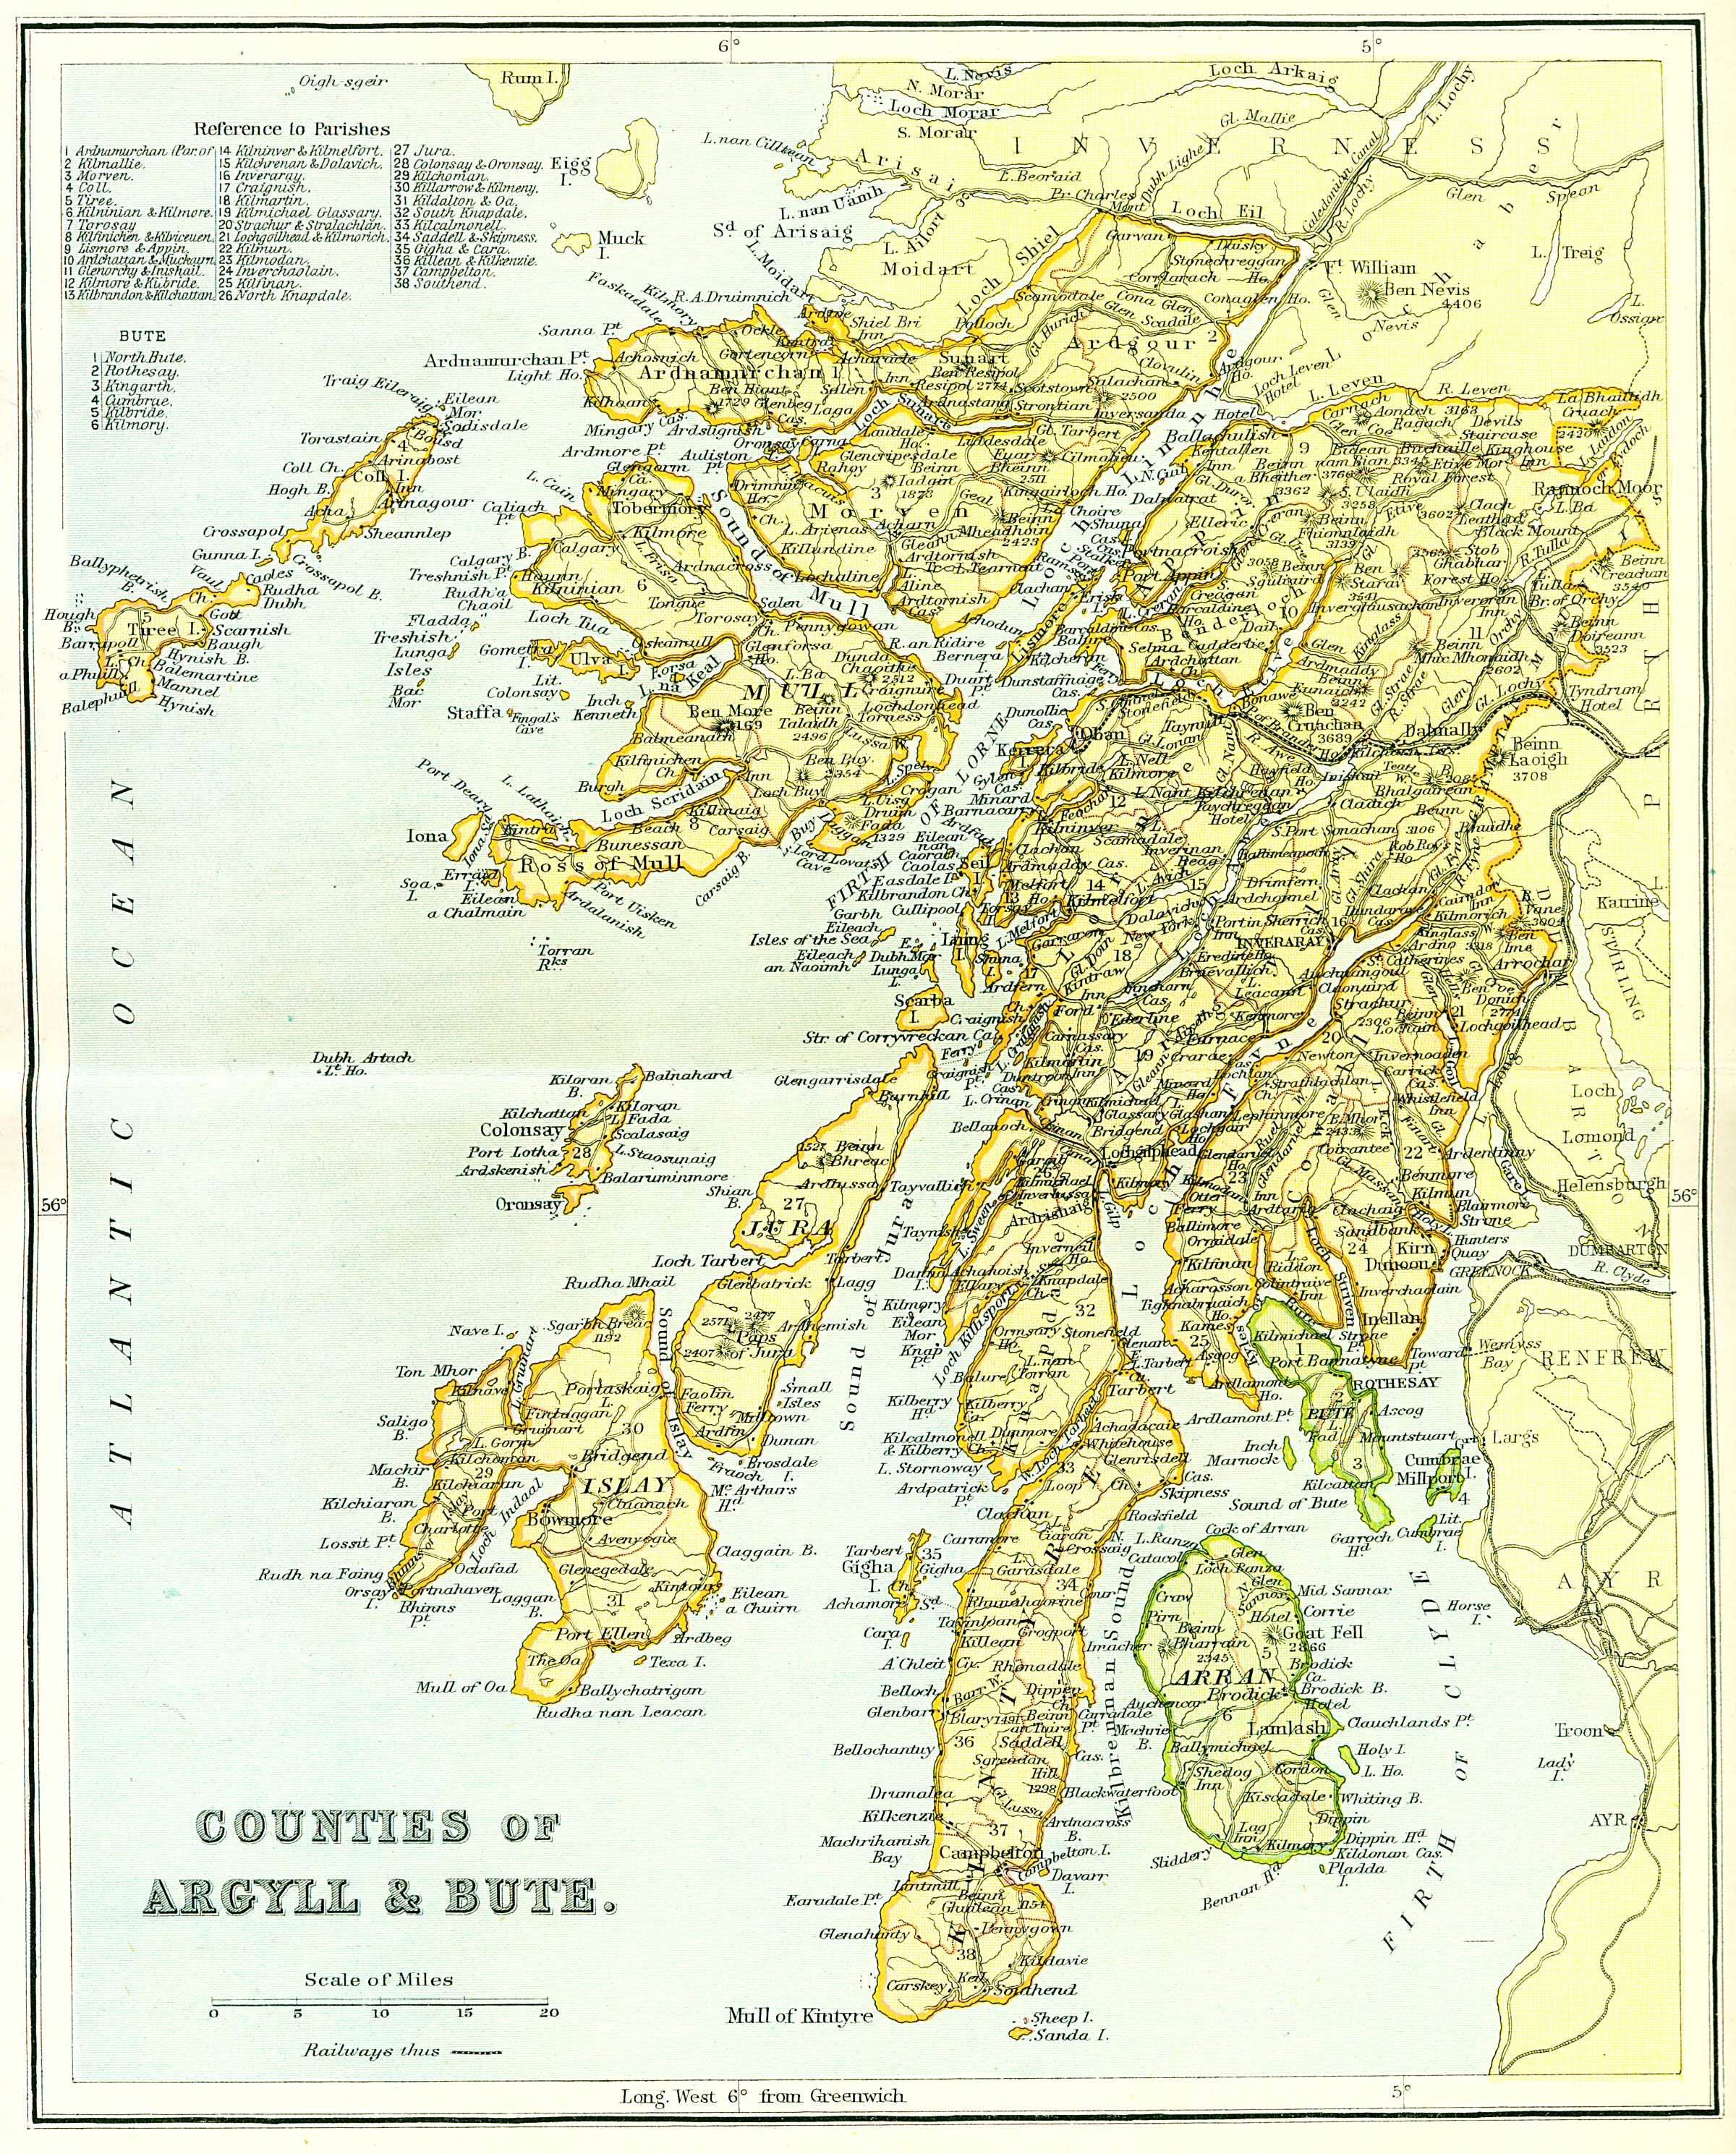 Ordnance Gazetteer of Scotland   Counties of Argyll & Bute Map